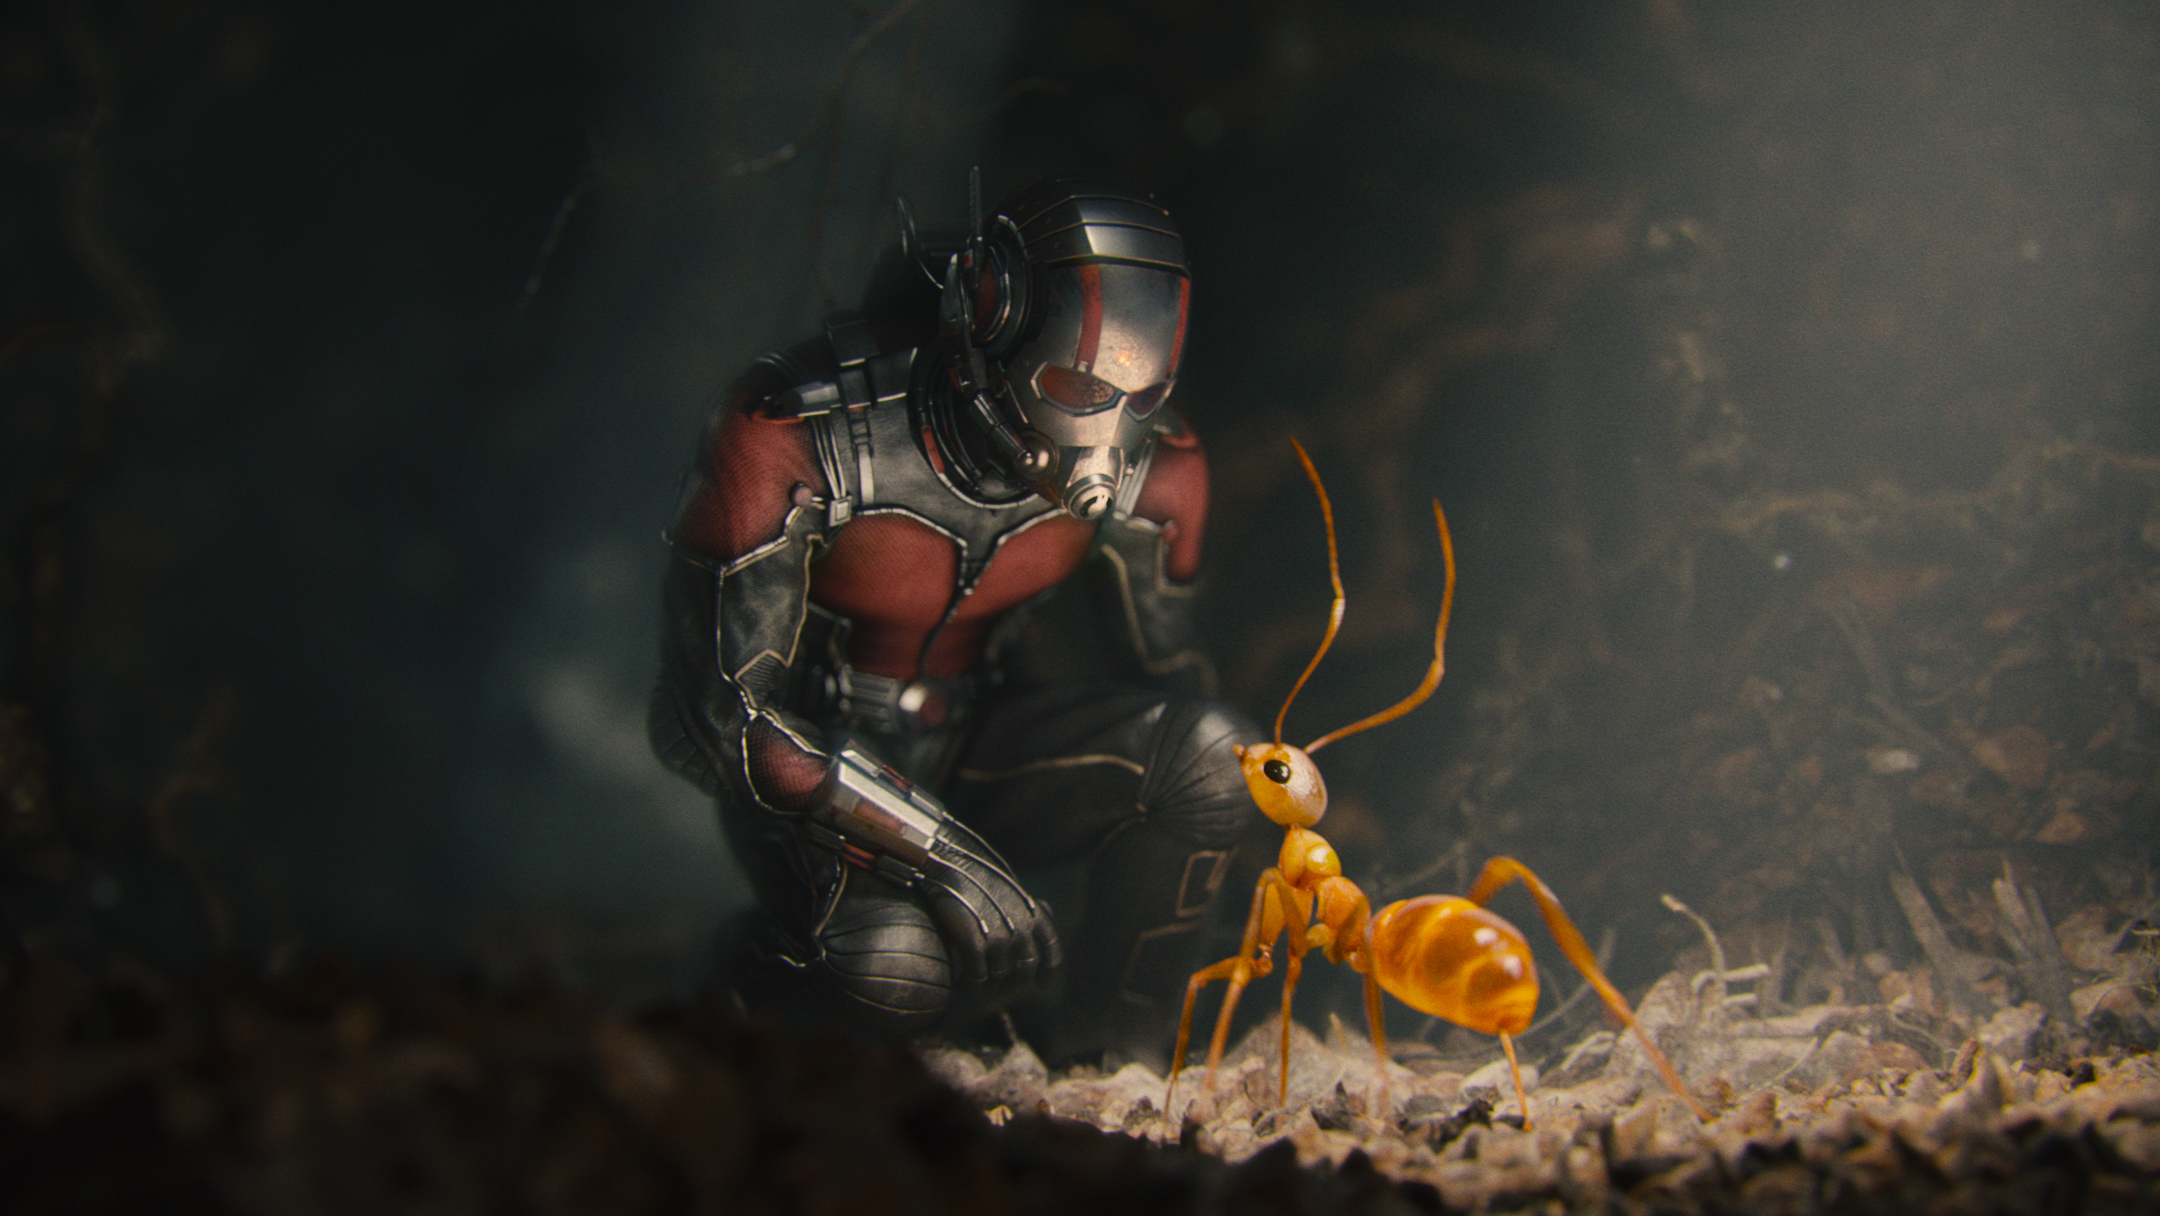 Ant-Man/Scott Lang (Paul Rudd) with one of his crazy ants.